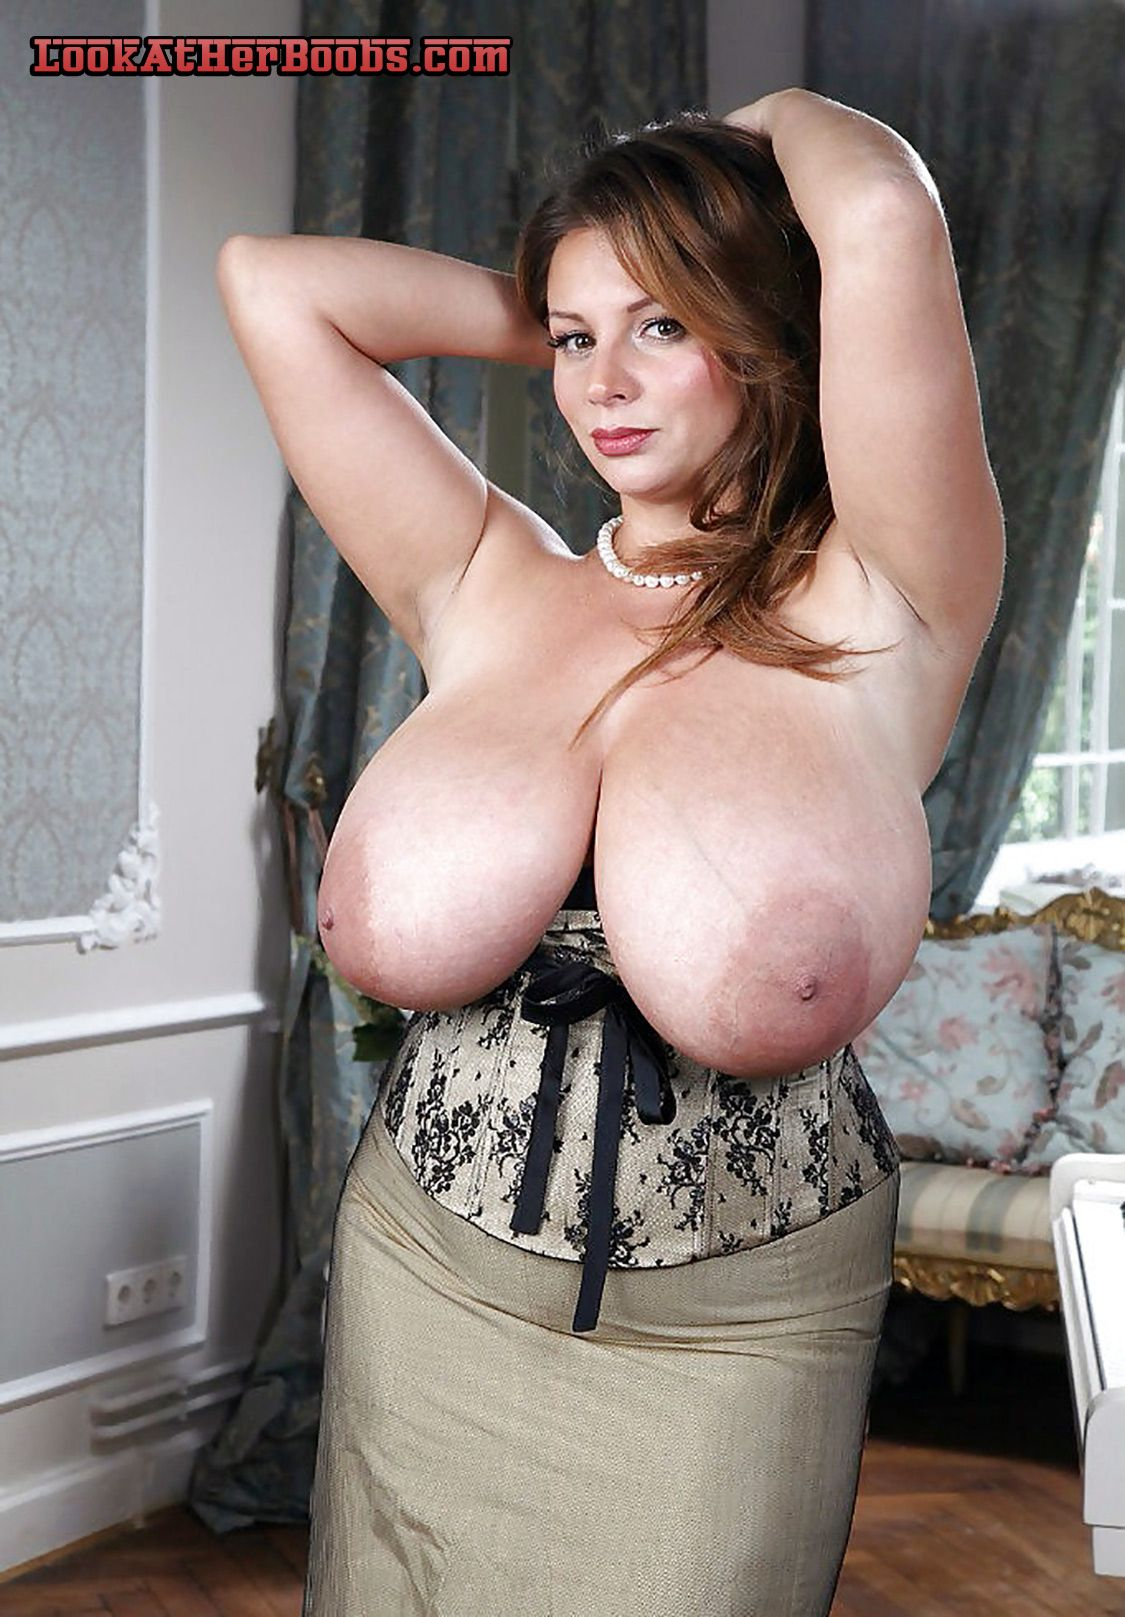 busty pinup girl flashing humongous titties. sexy redheaded bbw